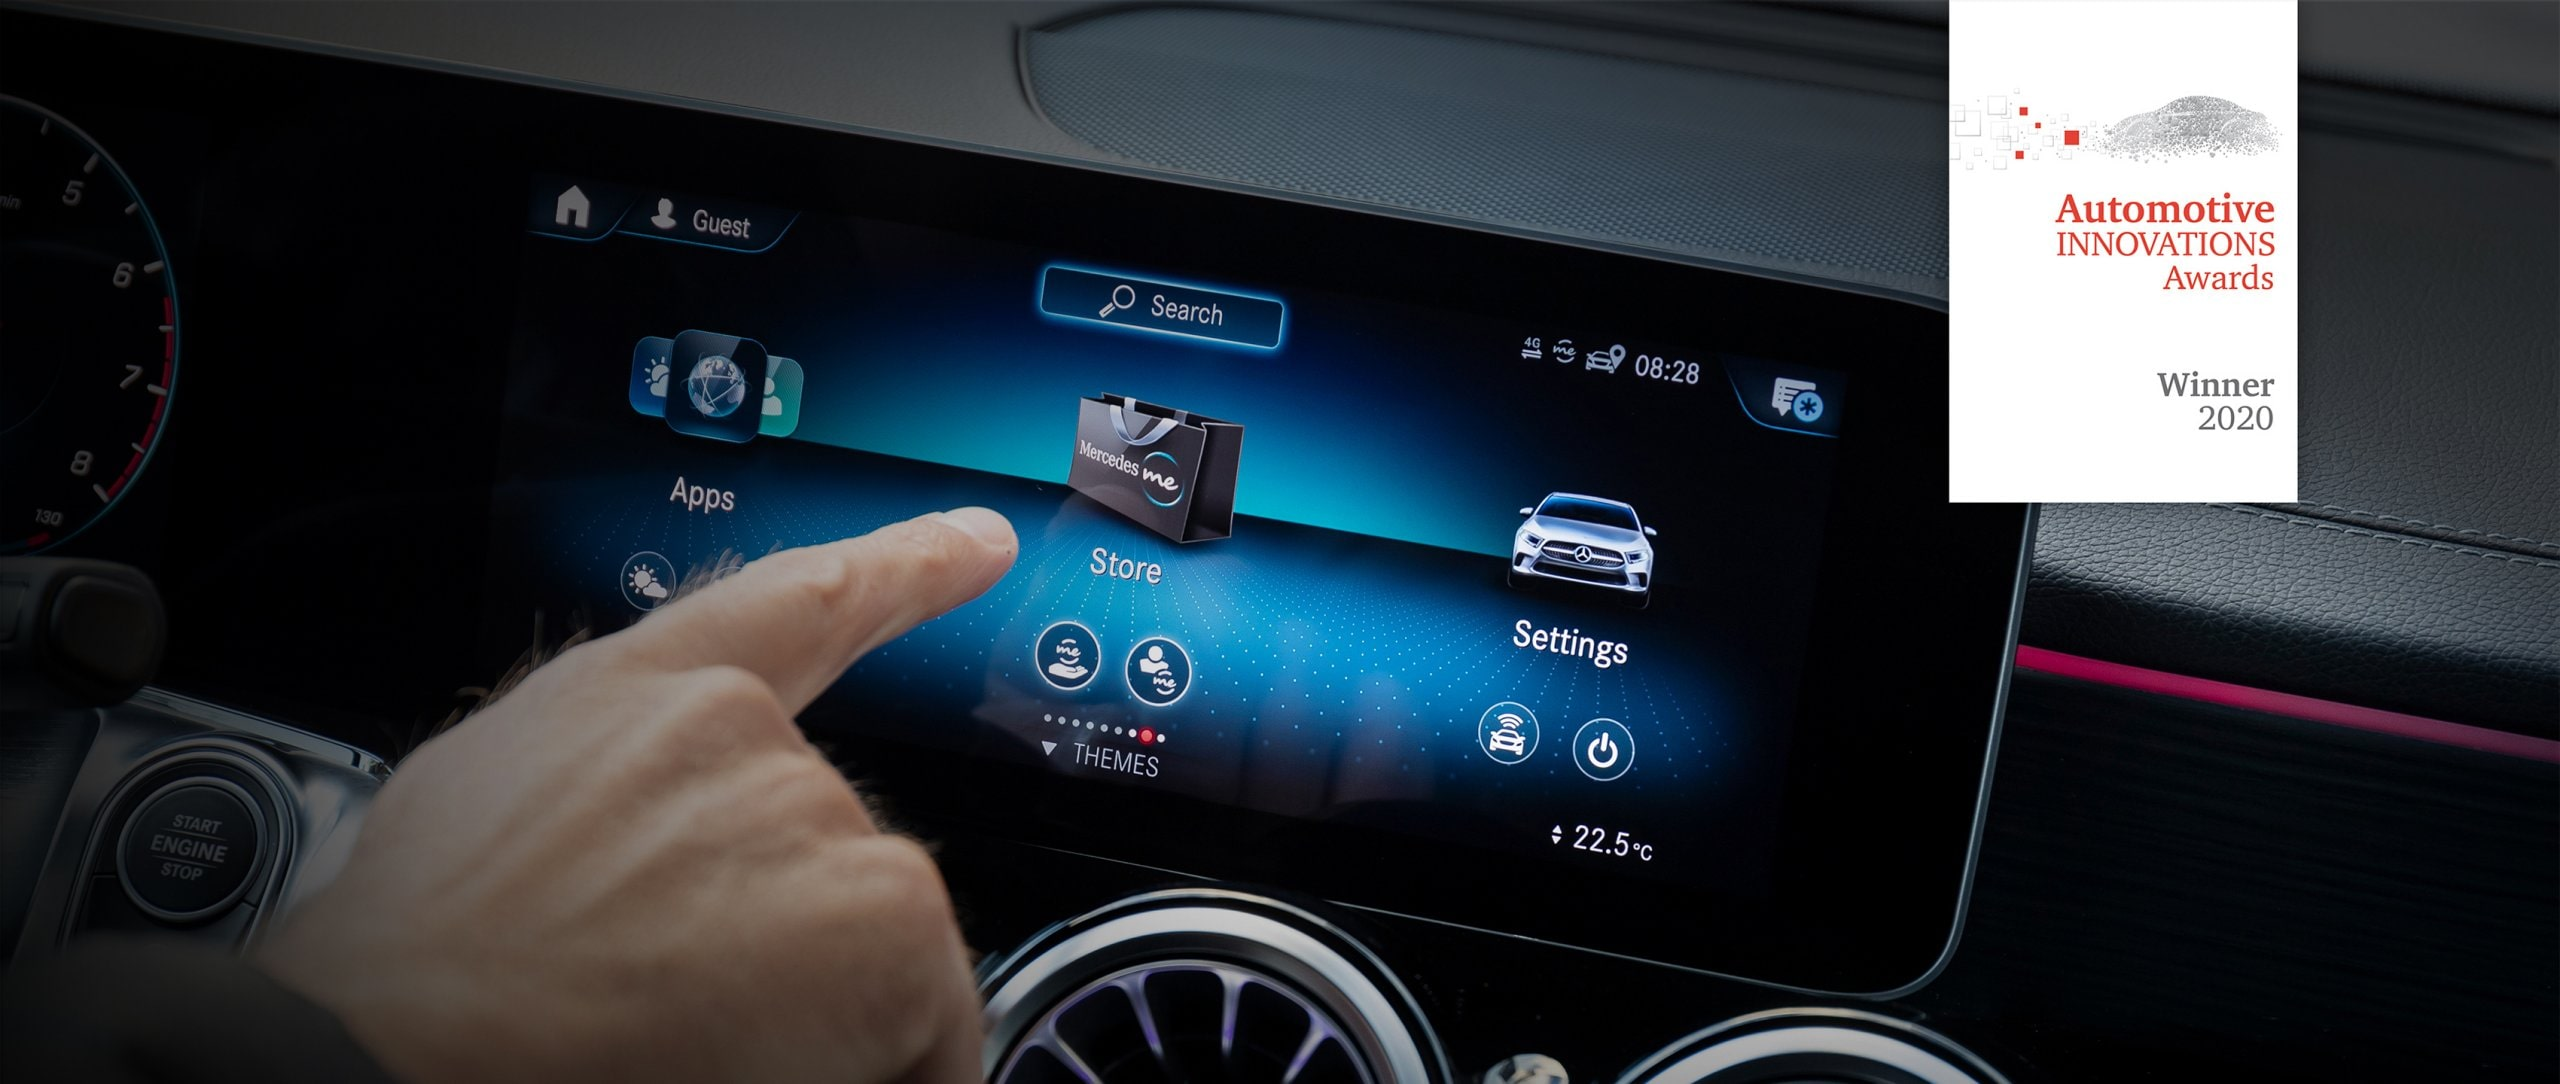 A hand operates the display of a Mercedes-Benz vehicle.